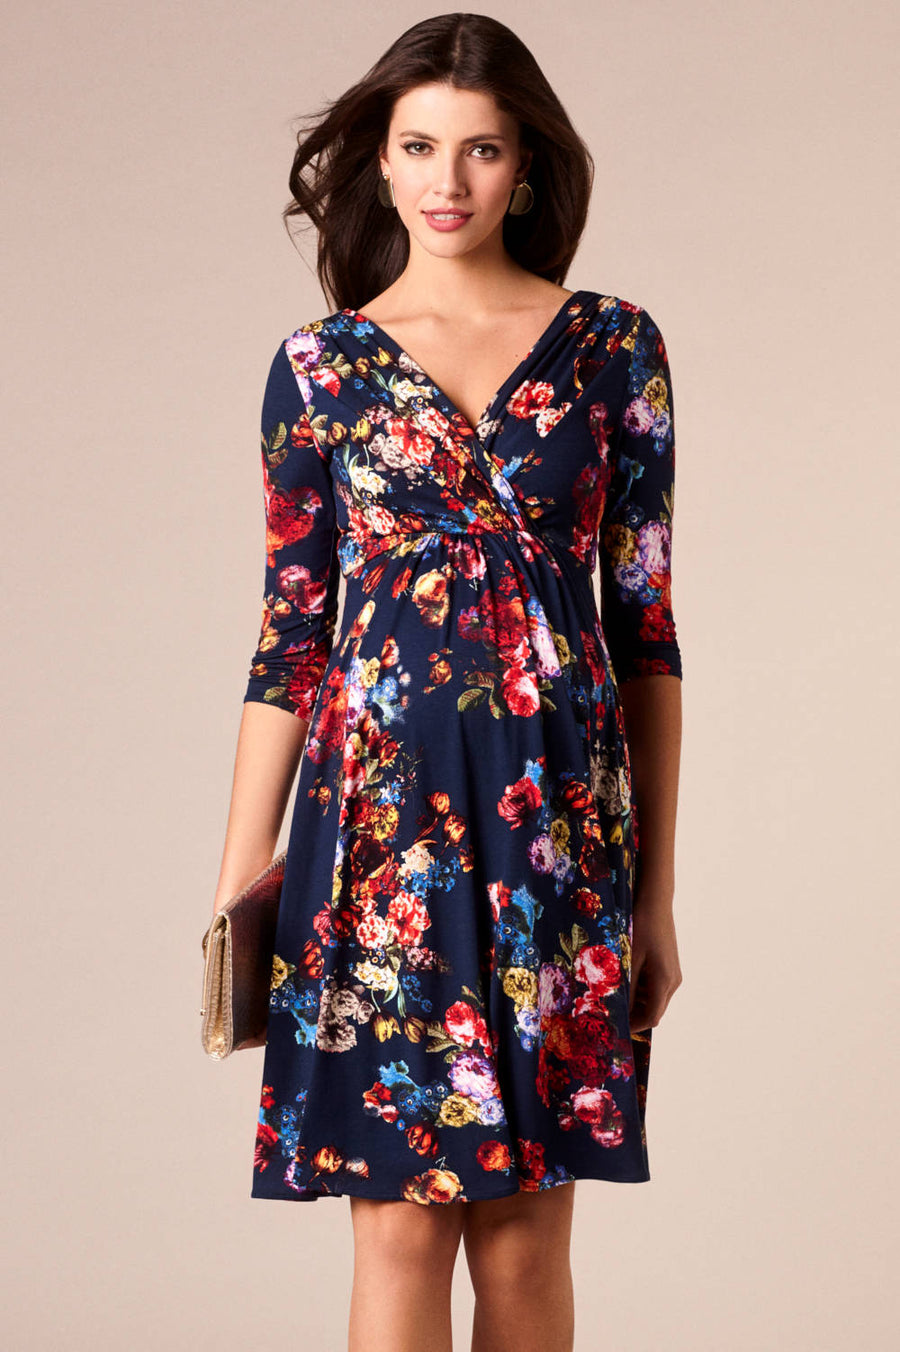 c6e7b3dc7e2 Tiffany Rose Willow Dress - Midnight Garden